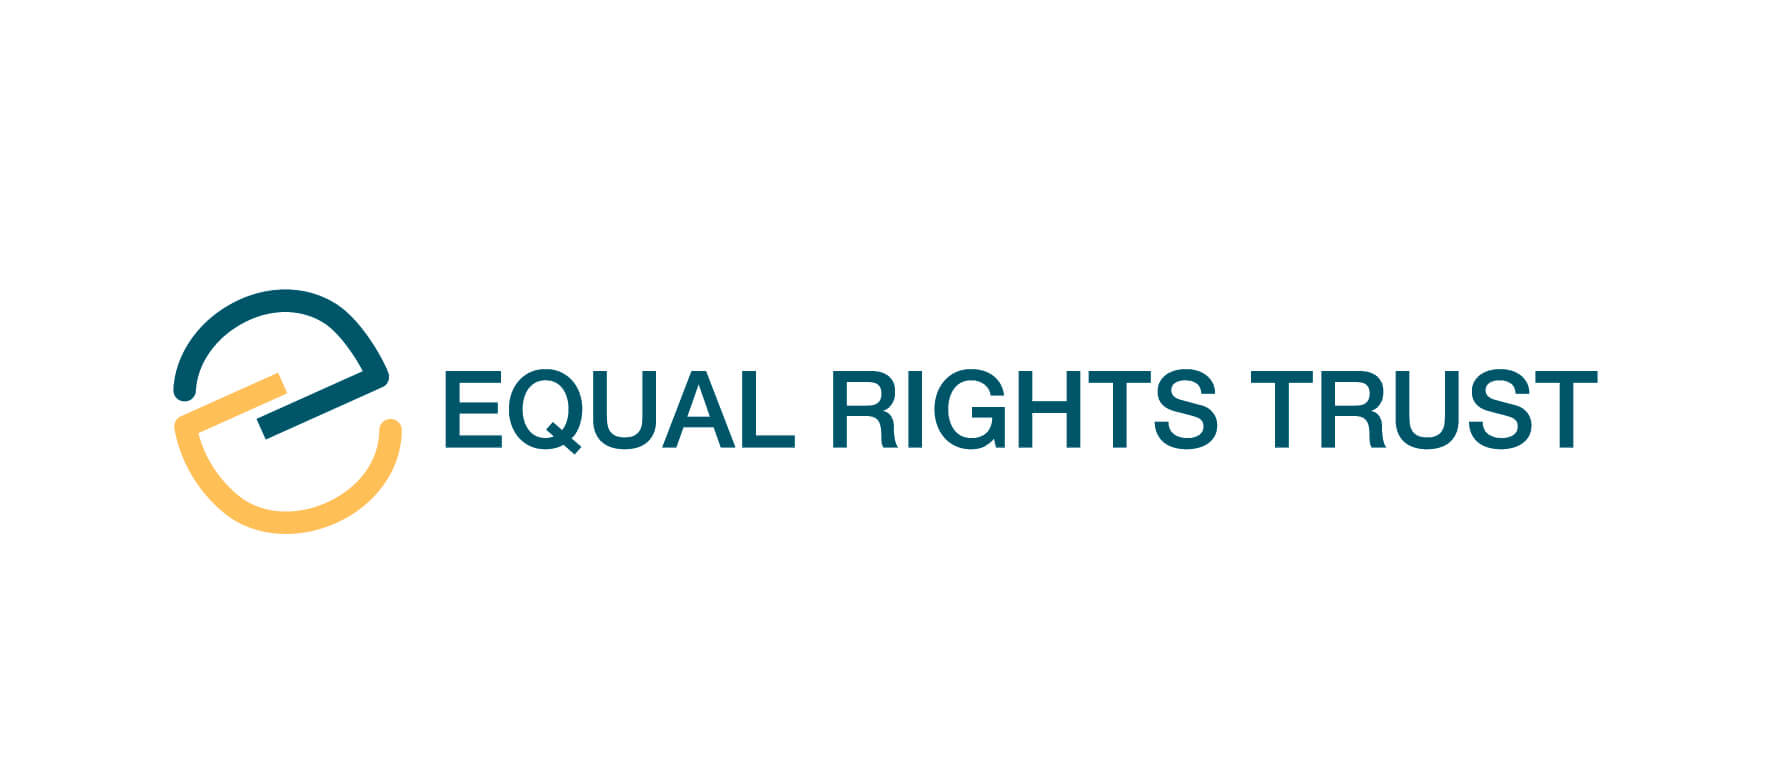 Equal Rights Trust and Industrial Law Society: Bob Hepple Equality Award 2016